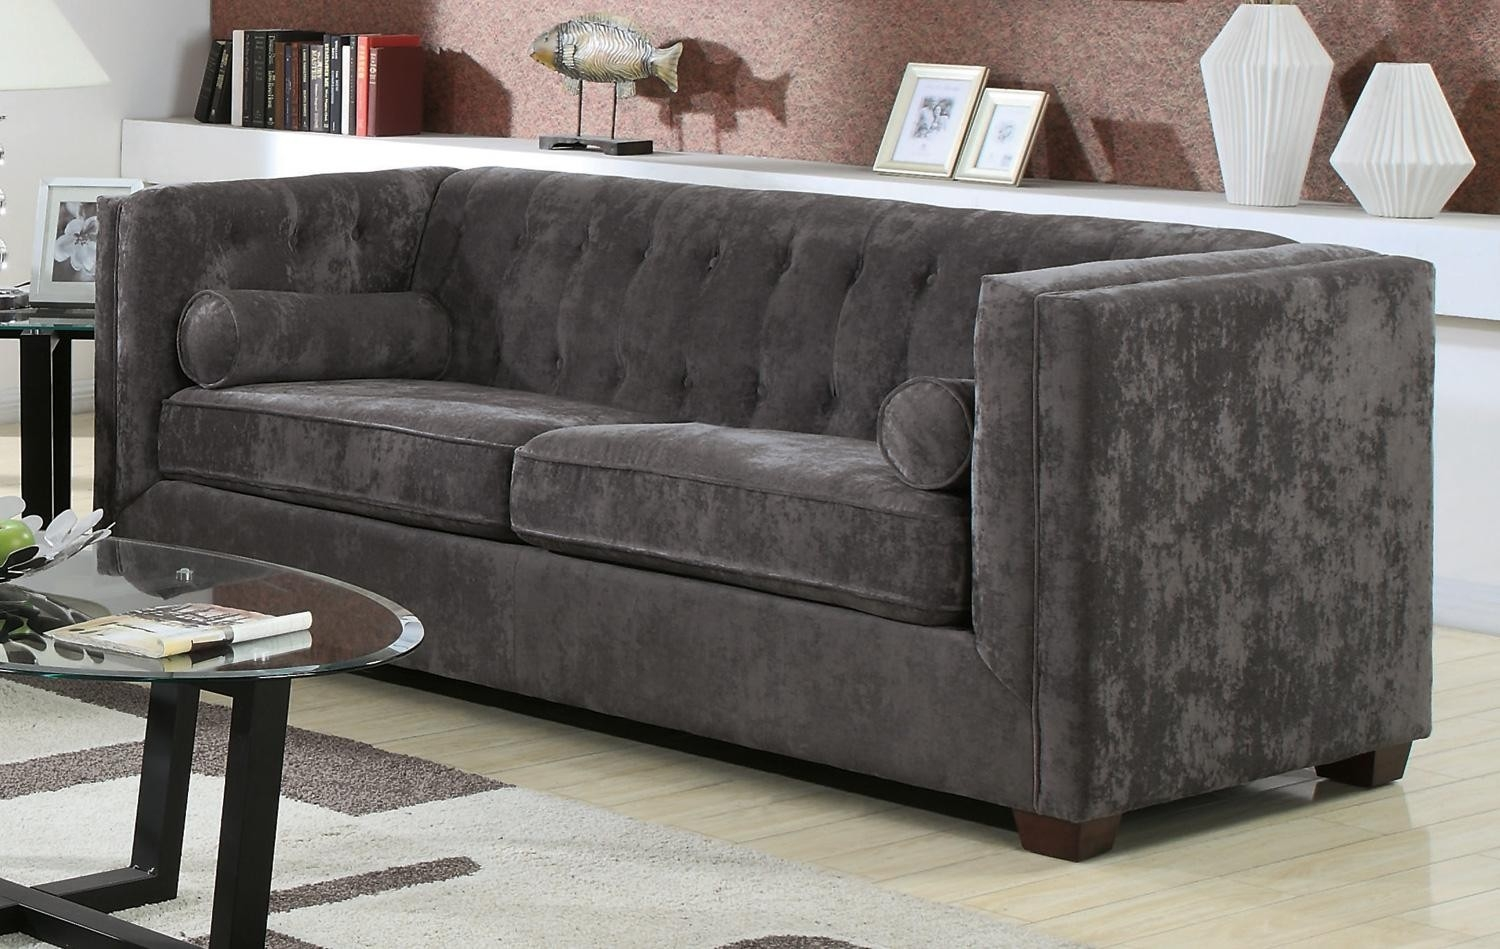 Sofas Center Alenya Sofa Set Charcoal Grey In Las Vegascharcoal Intended For Charcoal Grey Sofa (View 9 of 15)